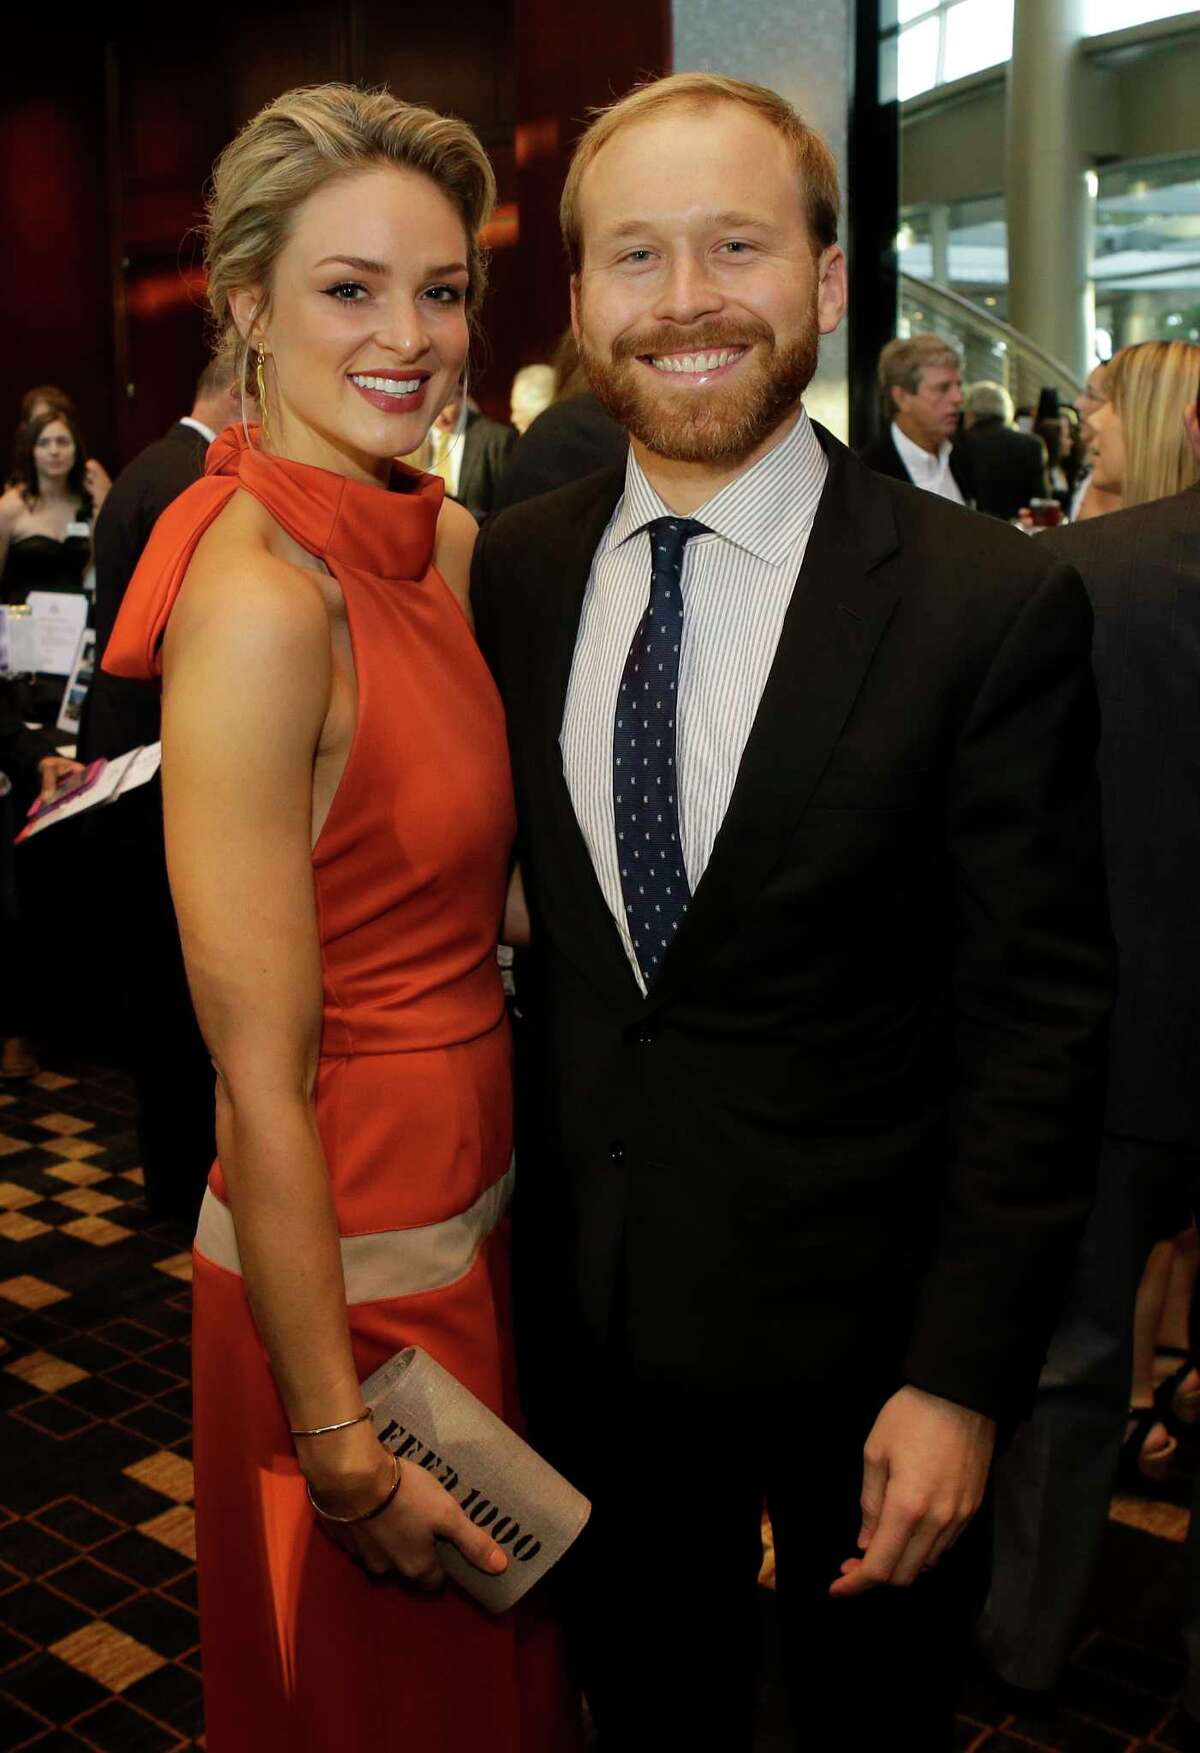 Sarahbeth Bush and Pierce Bush are shown during the Big Brothers Big Sisters gala held at the Royal Sonesta Hotel, 2222 West Loop S, Thursday, Sept. 6, 2018, in Houston.